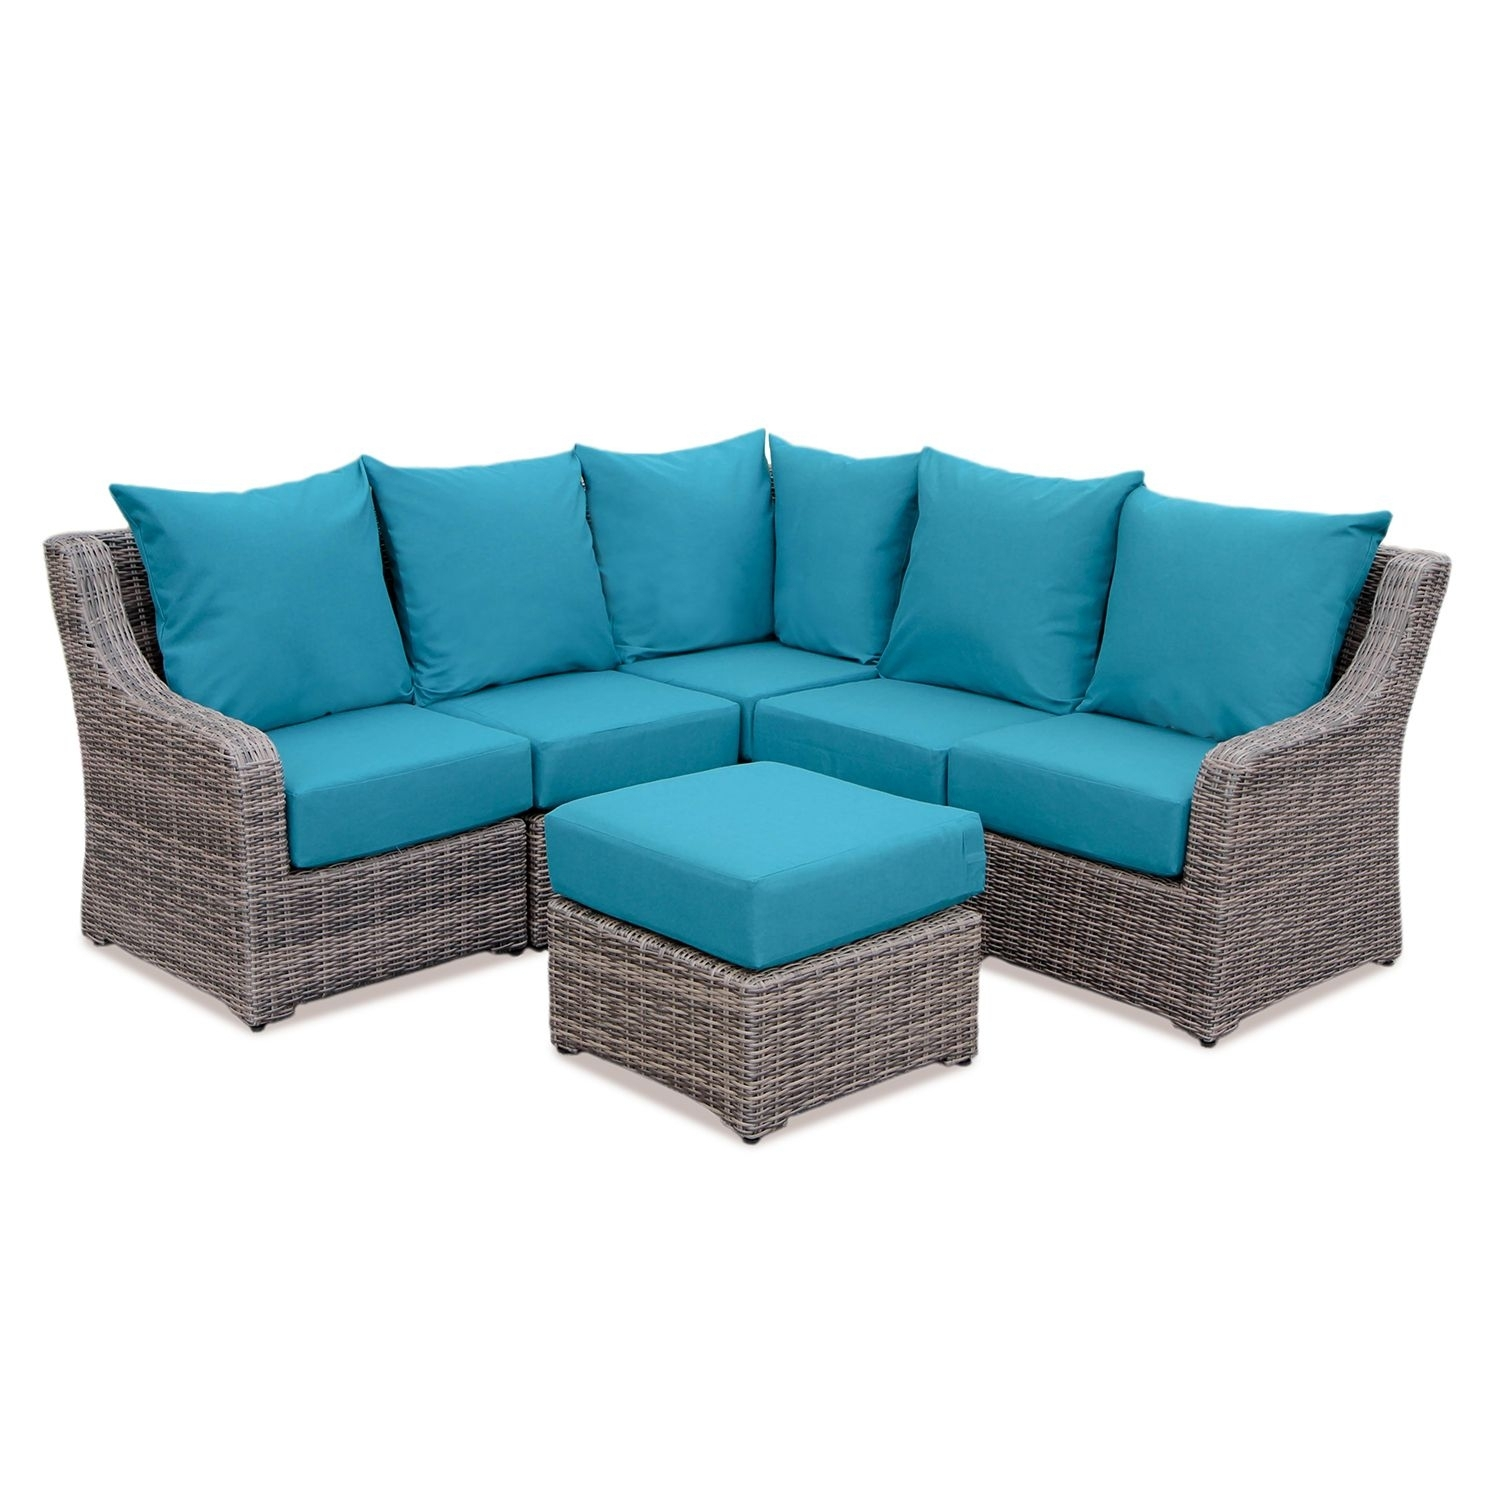 Cedar Grove 6 Piece Sectional With Sunbrella Fabric And Multiple Within Sectional Sofas At Sam's Club (View 6 of 15)